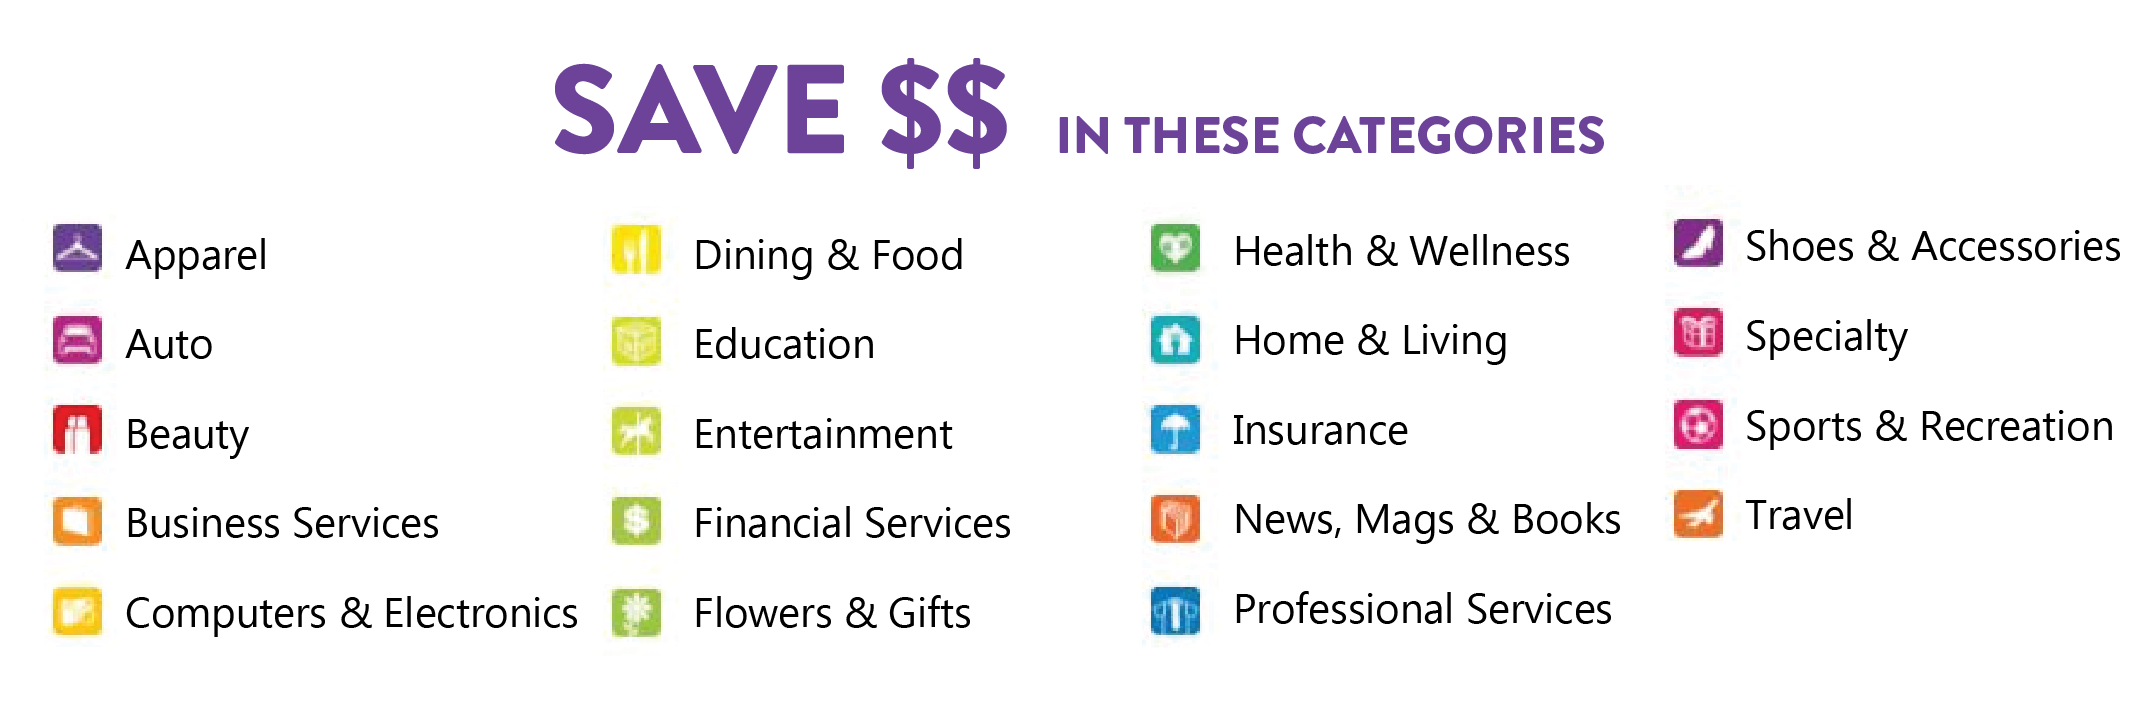 Save on the categories